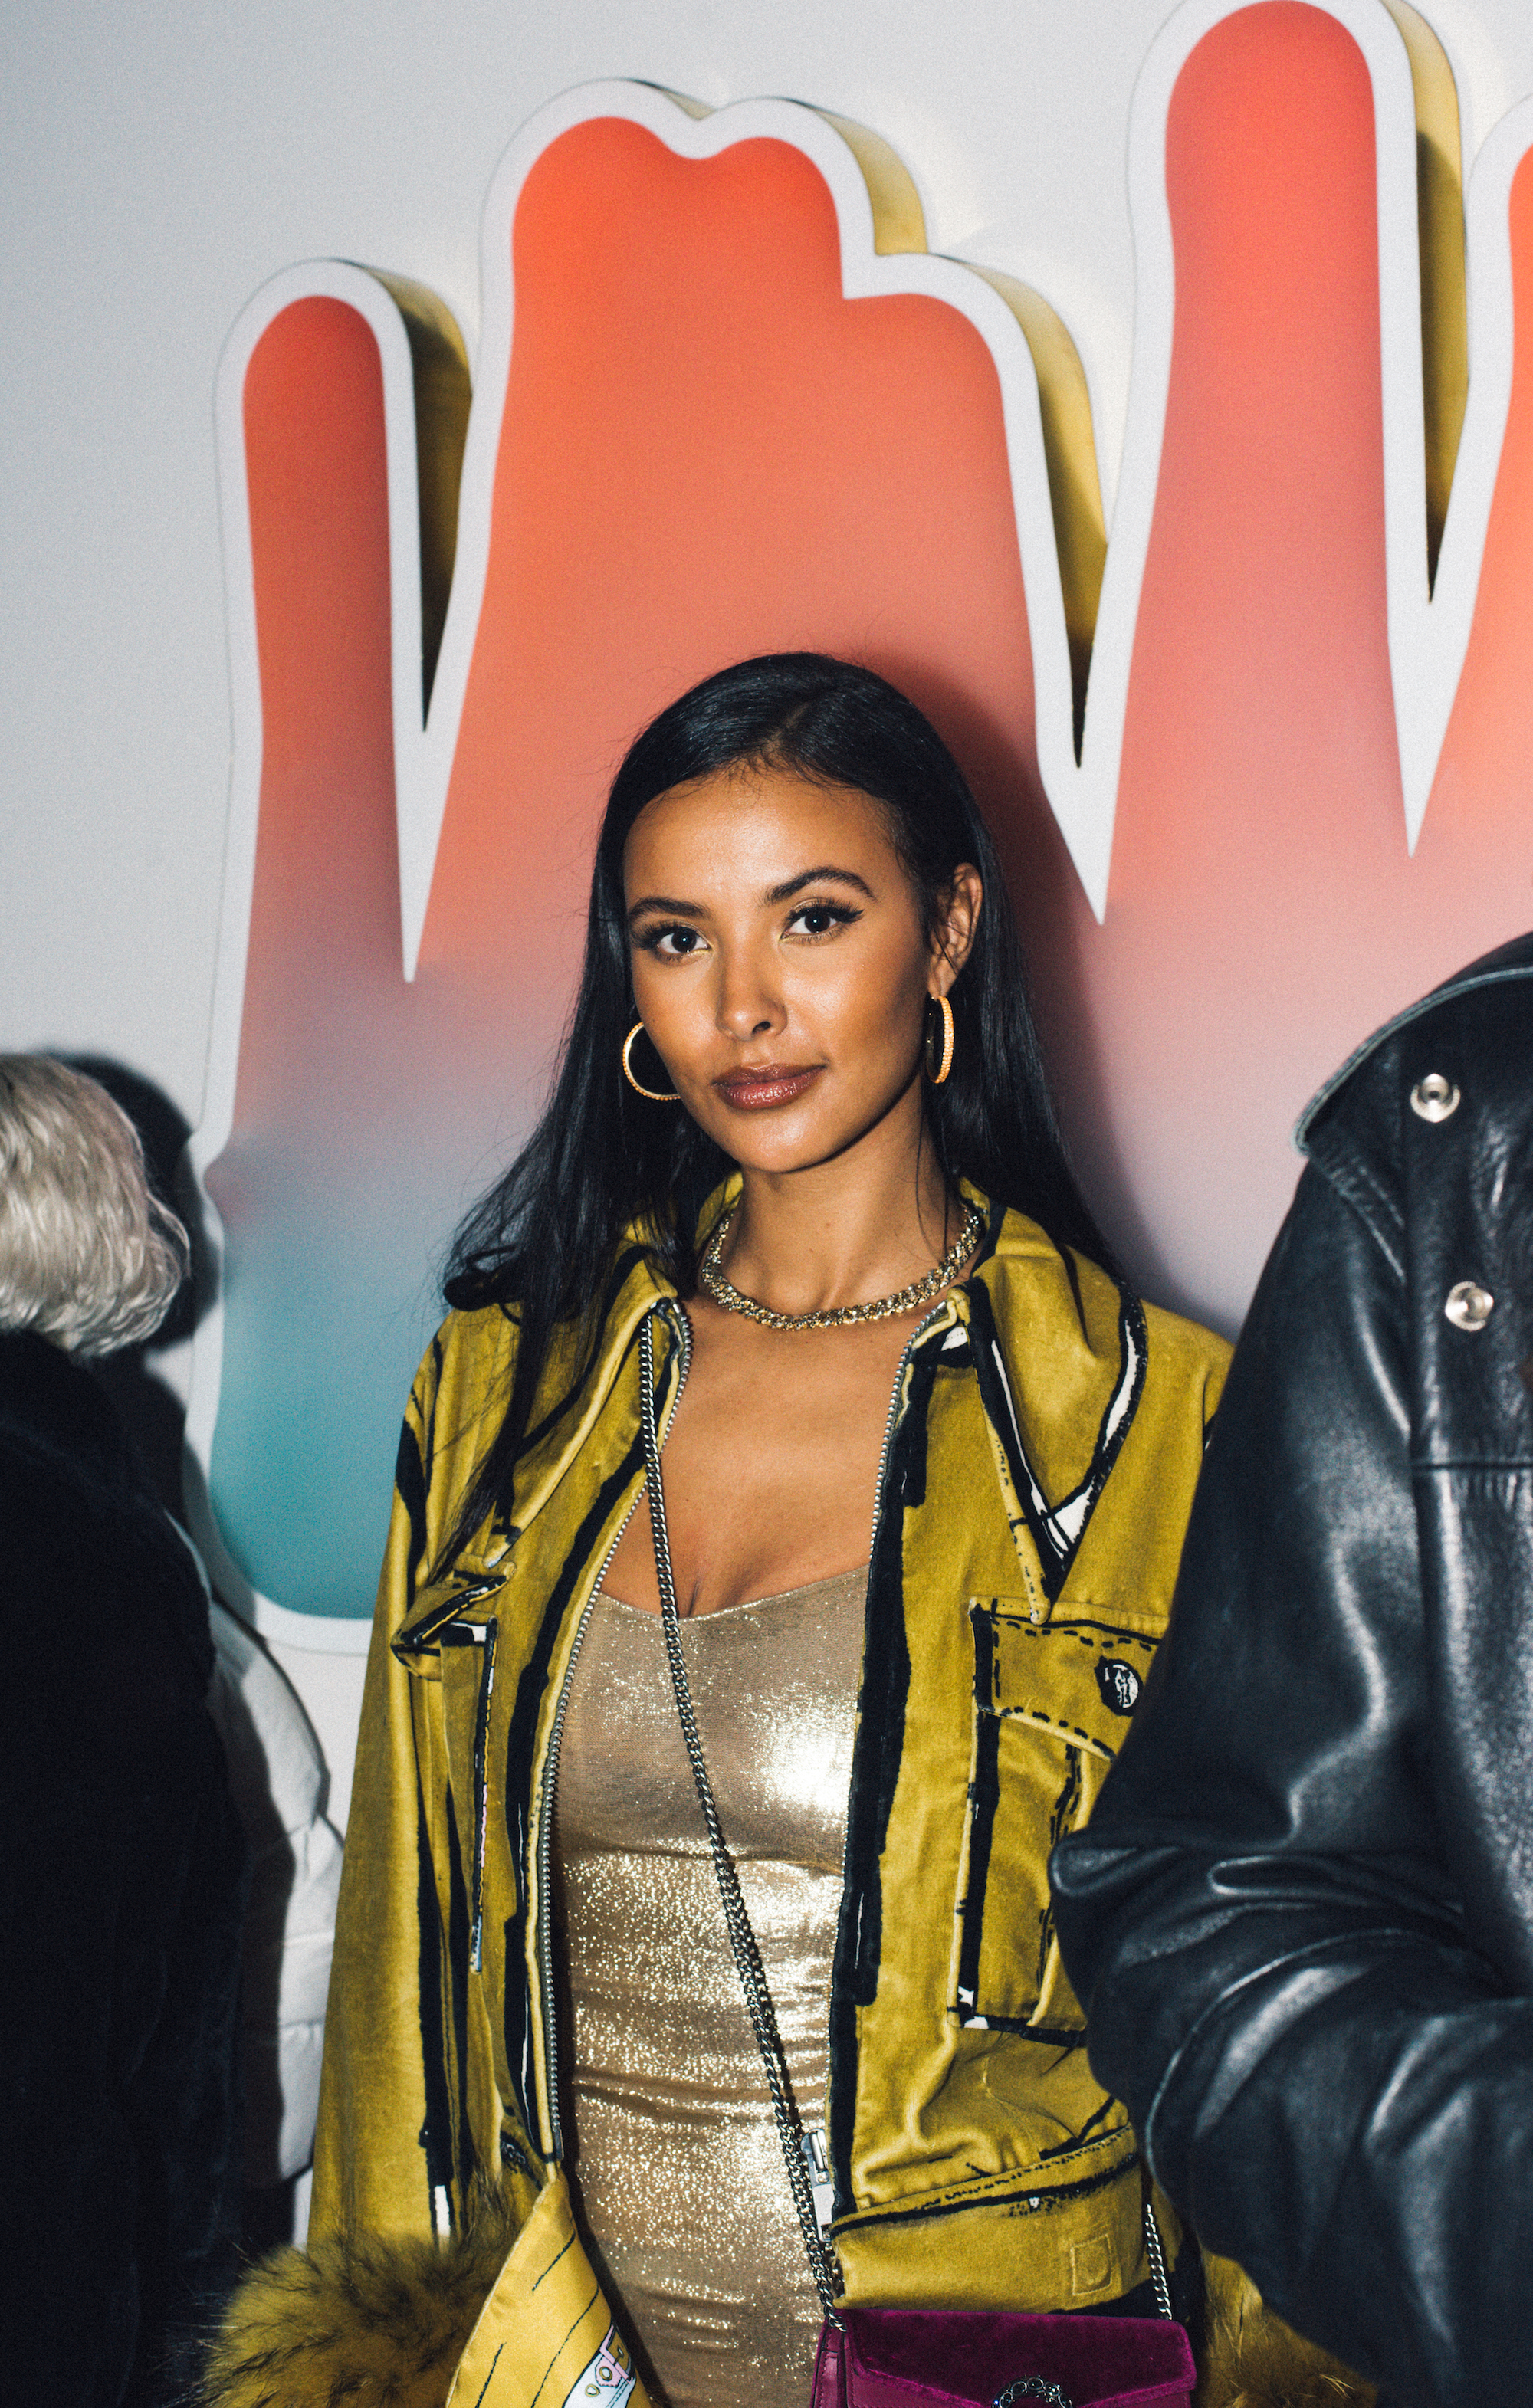 Wonderland x Christian Louboutin LFW party Maya Jama